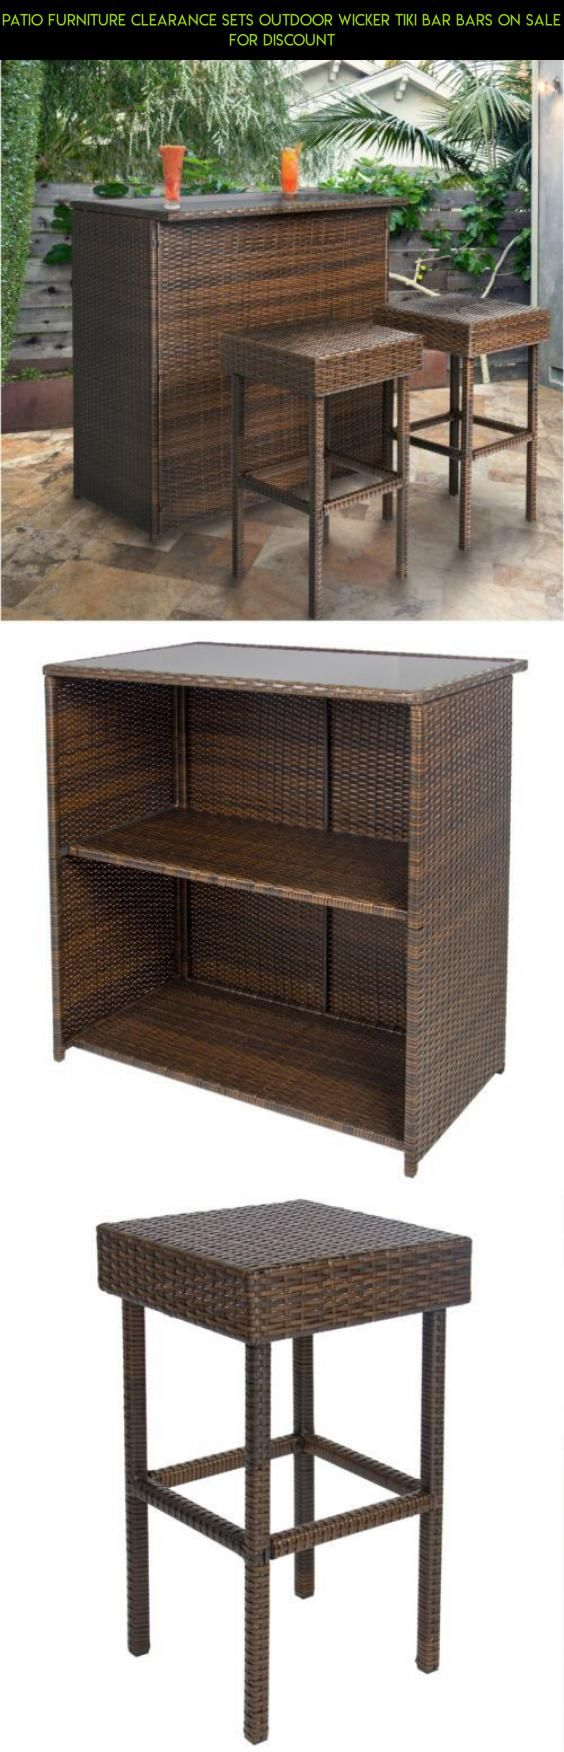 best 25 patio furniture clearance ideas on pinterest wicker patio furniture clearance. Black Bedroom Furniture Sets. Home Design Ideas